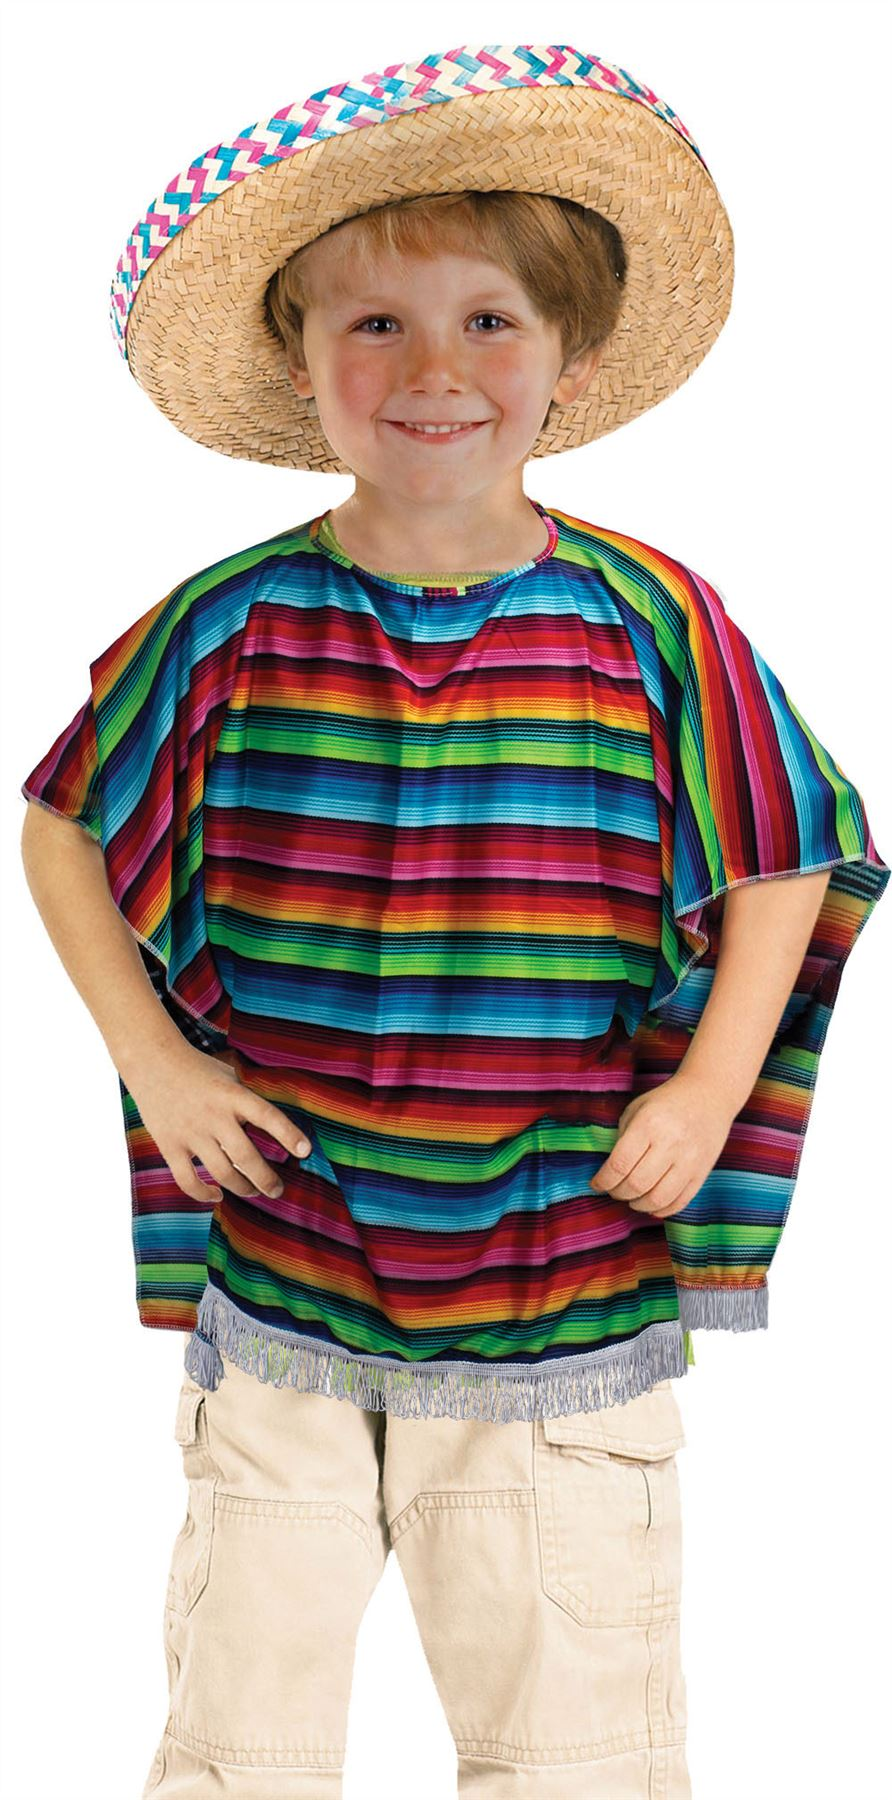 Details about Mexican Poncho, Childrens Fancy Dress Costume,  Kids/Boys/Girls/Unisex AU